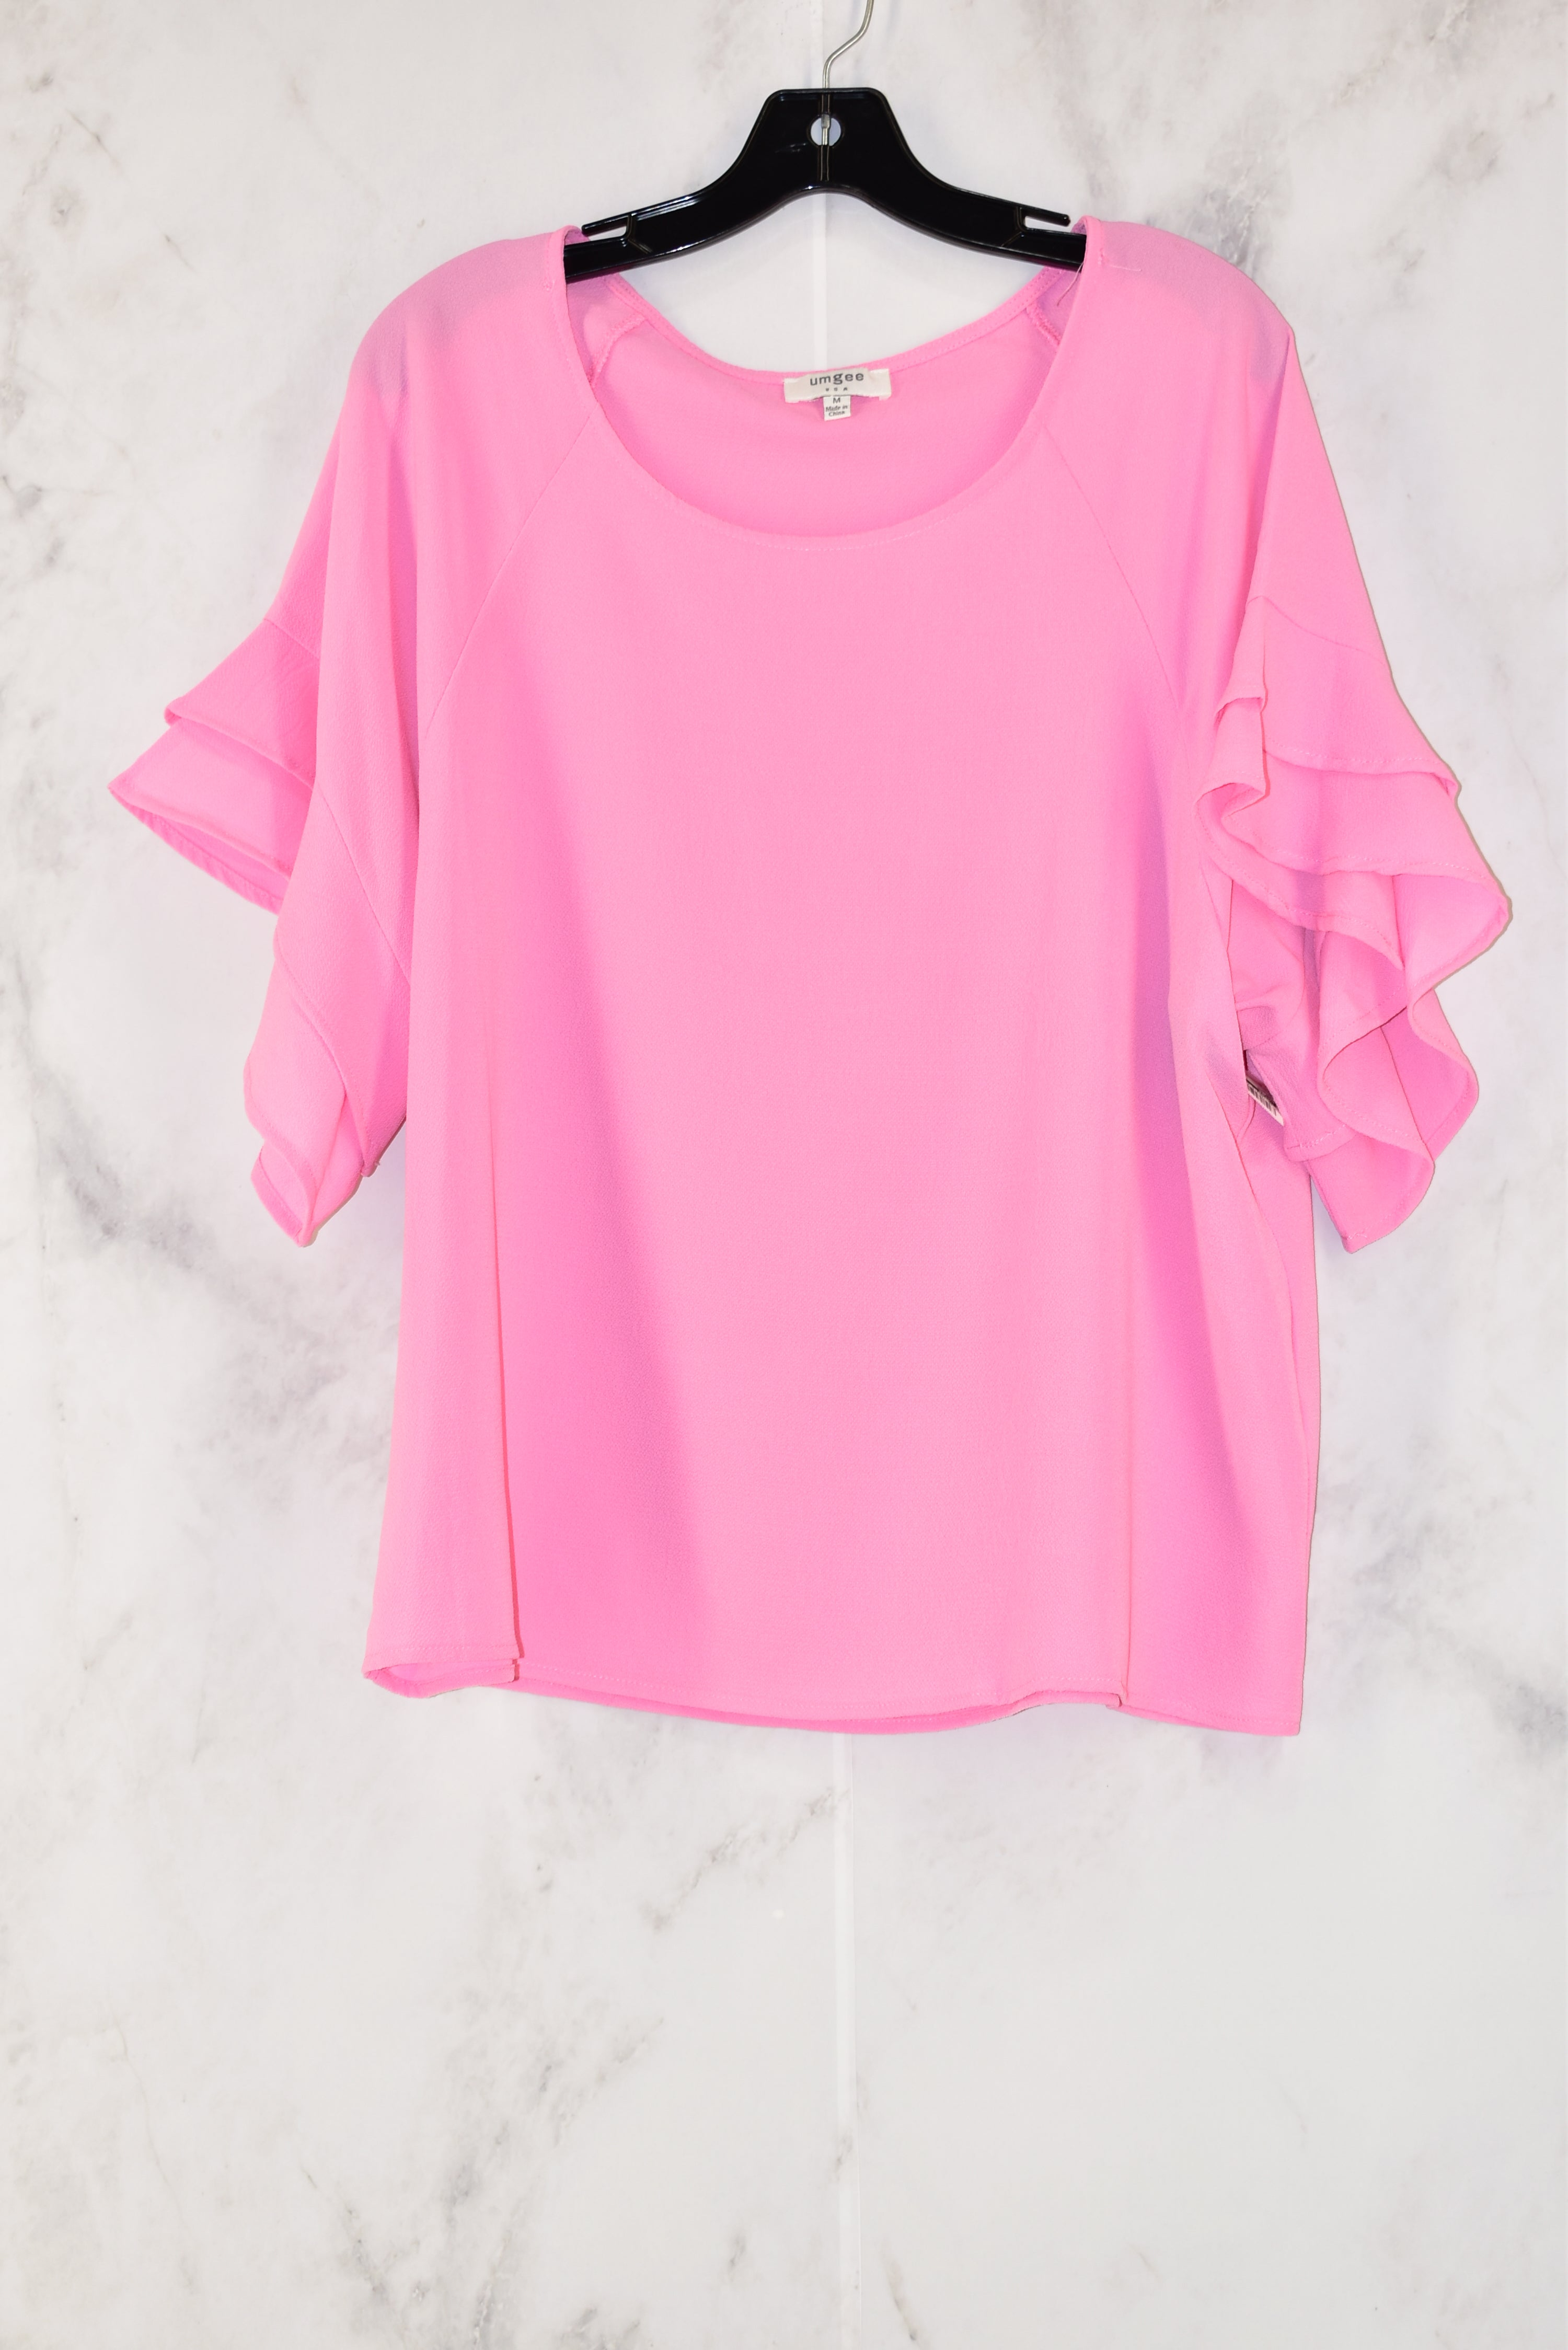 Primary Photo - BRAND: UMGEE<BR>STYLE: TOP SHORT SLEEVE<BR>COLOR: PINK<BR>SIZE: M<BR>SKU: 186-186215-653